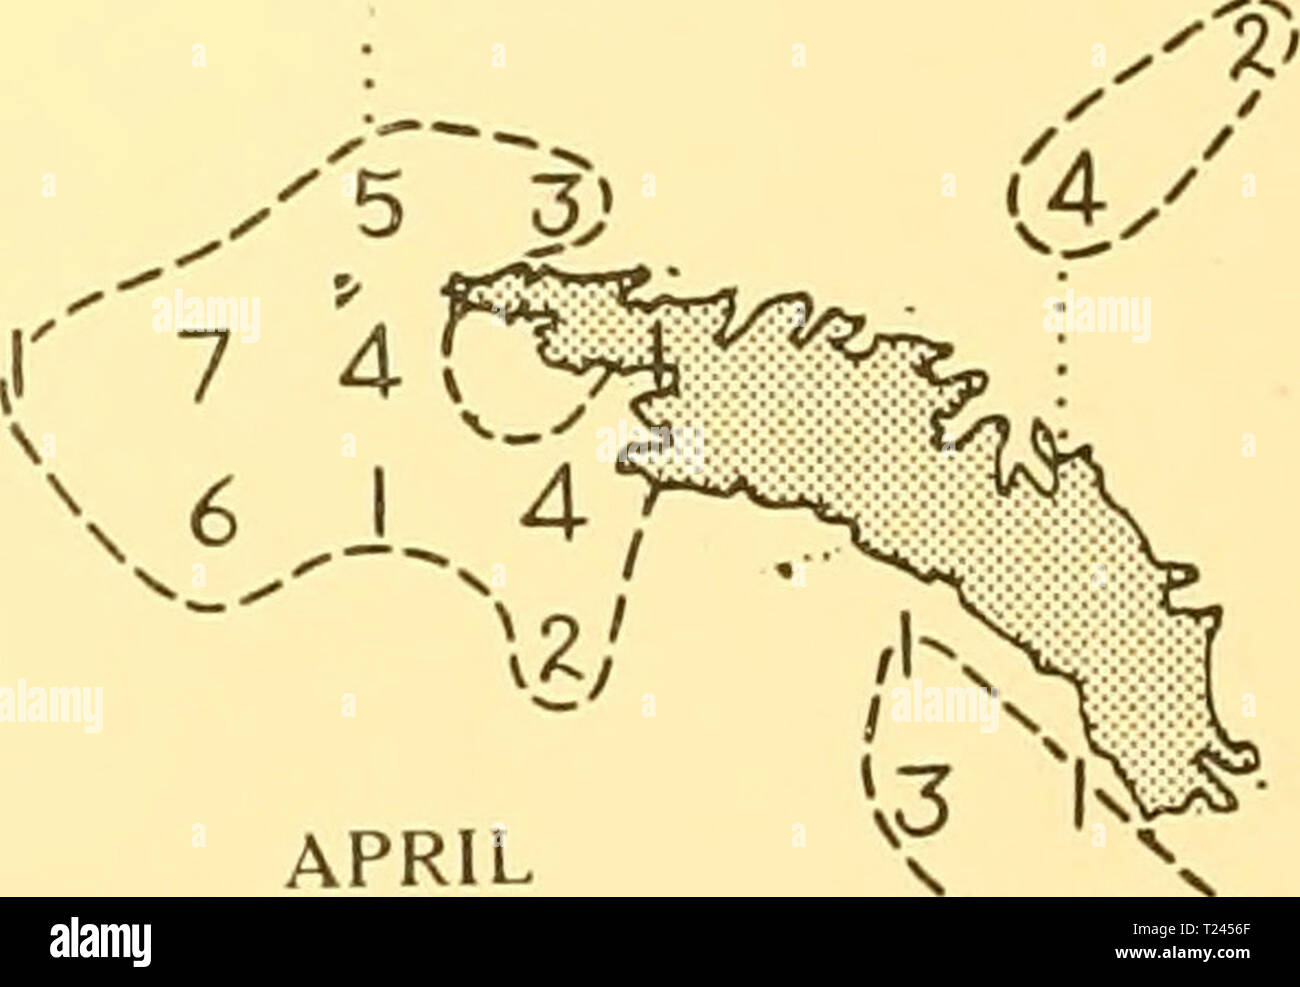 Archive image from page 239 of Discovery reports (1932) Discovery reports  discoveryreports06inst Year: 1932  vr 6 3) d—r''3 3 J' MARCH 39 ® t> (Z l 5 ® '1') (i' FEBRUARY 176  /    APRIL 48 SCALE OF NAUTICAL MILES. 100 '-L_:i. 200 Distribution of Blue whales taken on the South Georgia grounds in season 1923-4 - Stock Image